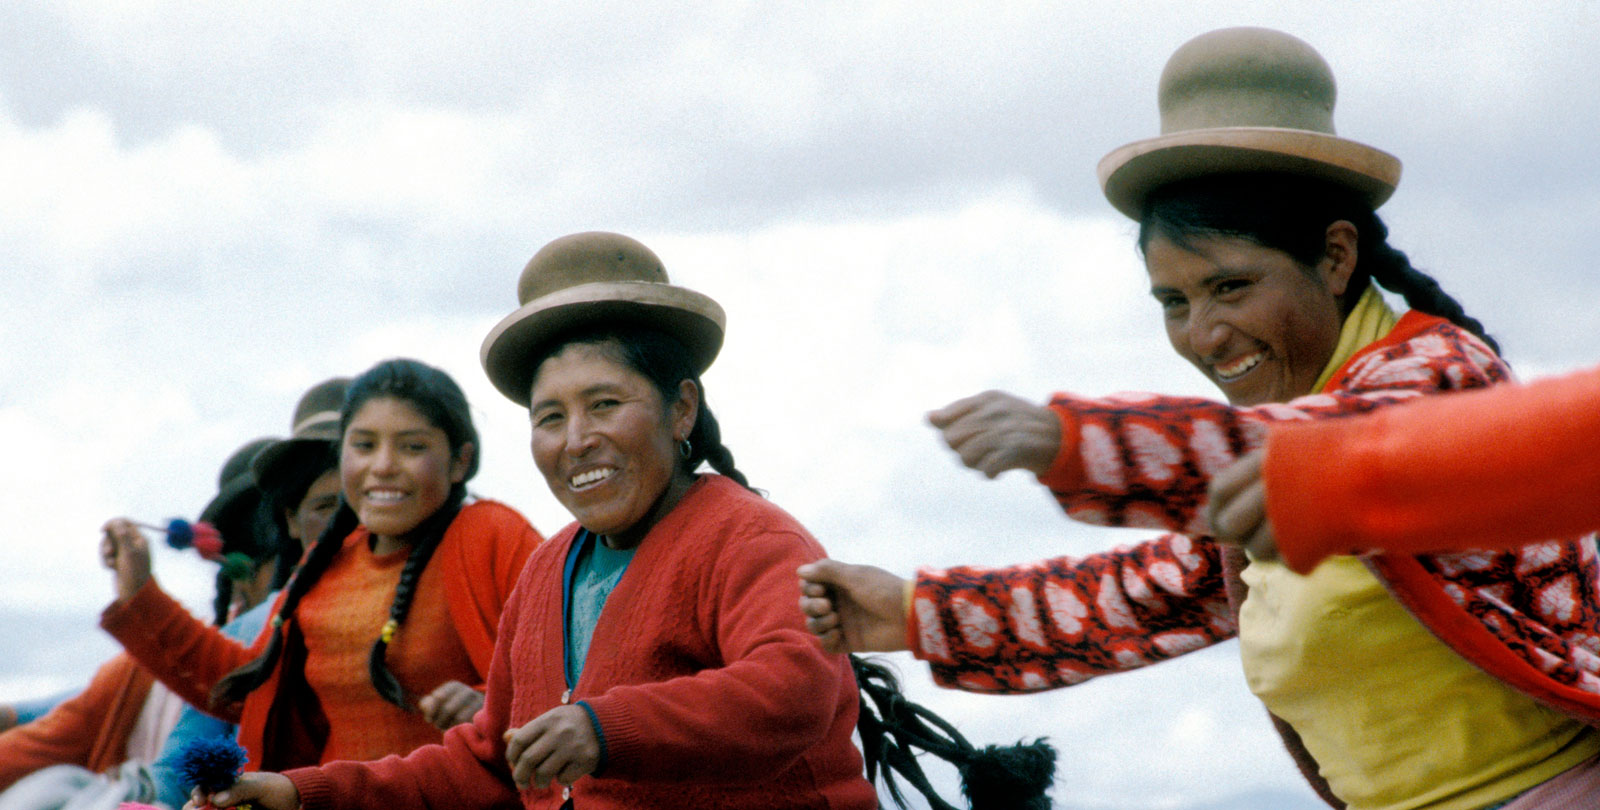 Une villageoise des Andes dancent une danse traditionelle.